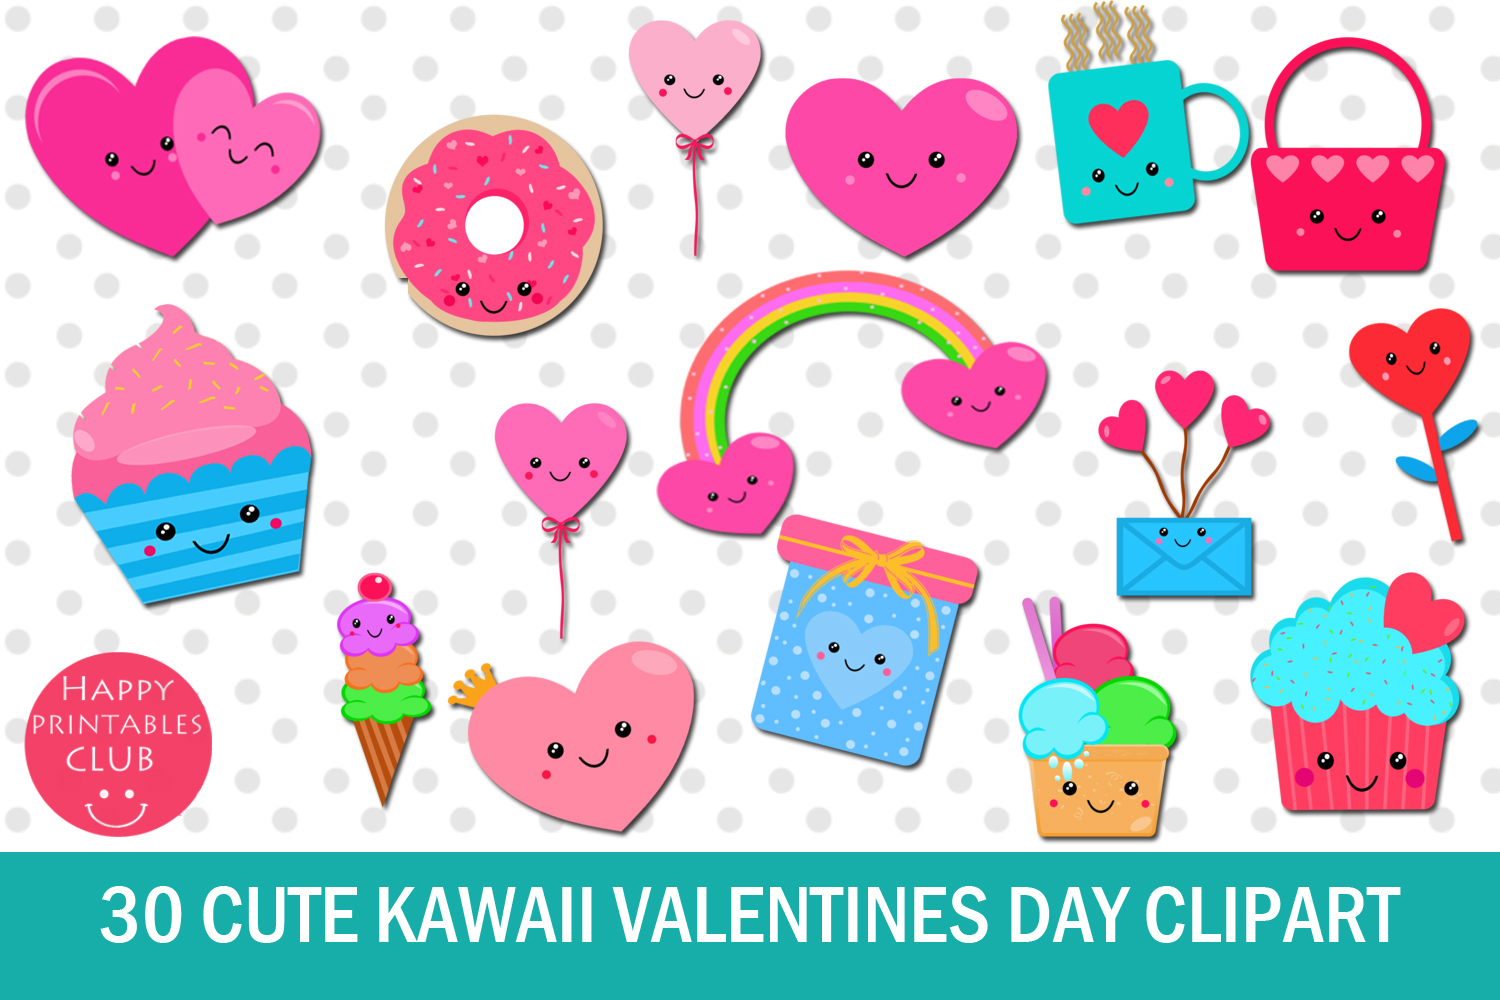 30 Cute Kawaii Valentines Day Clipart.